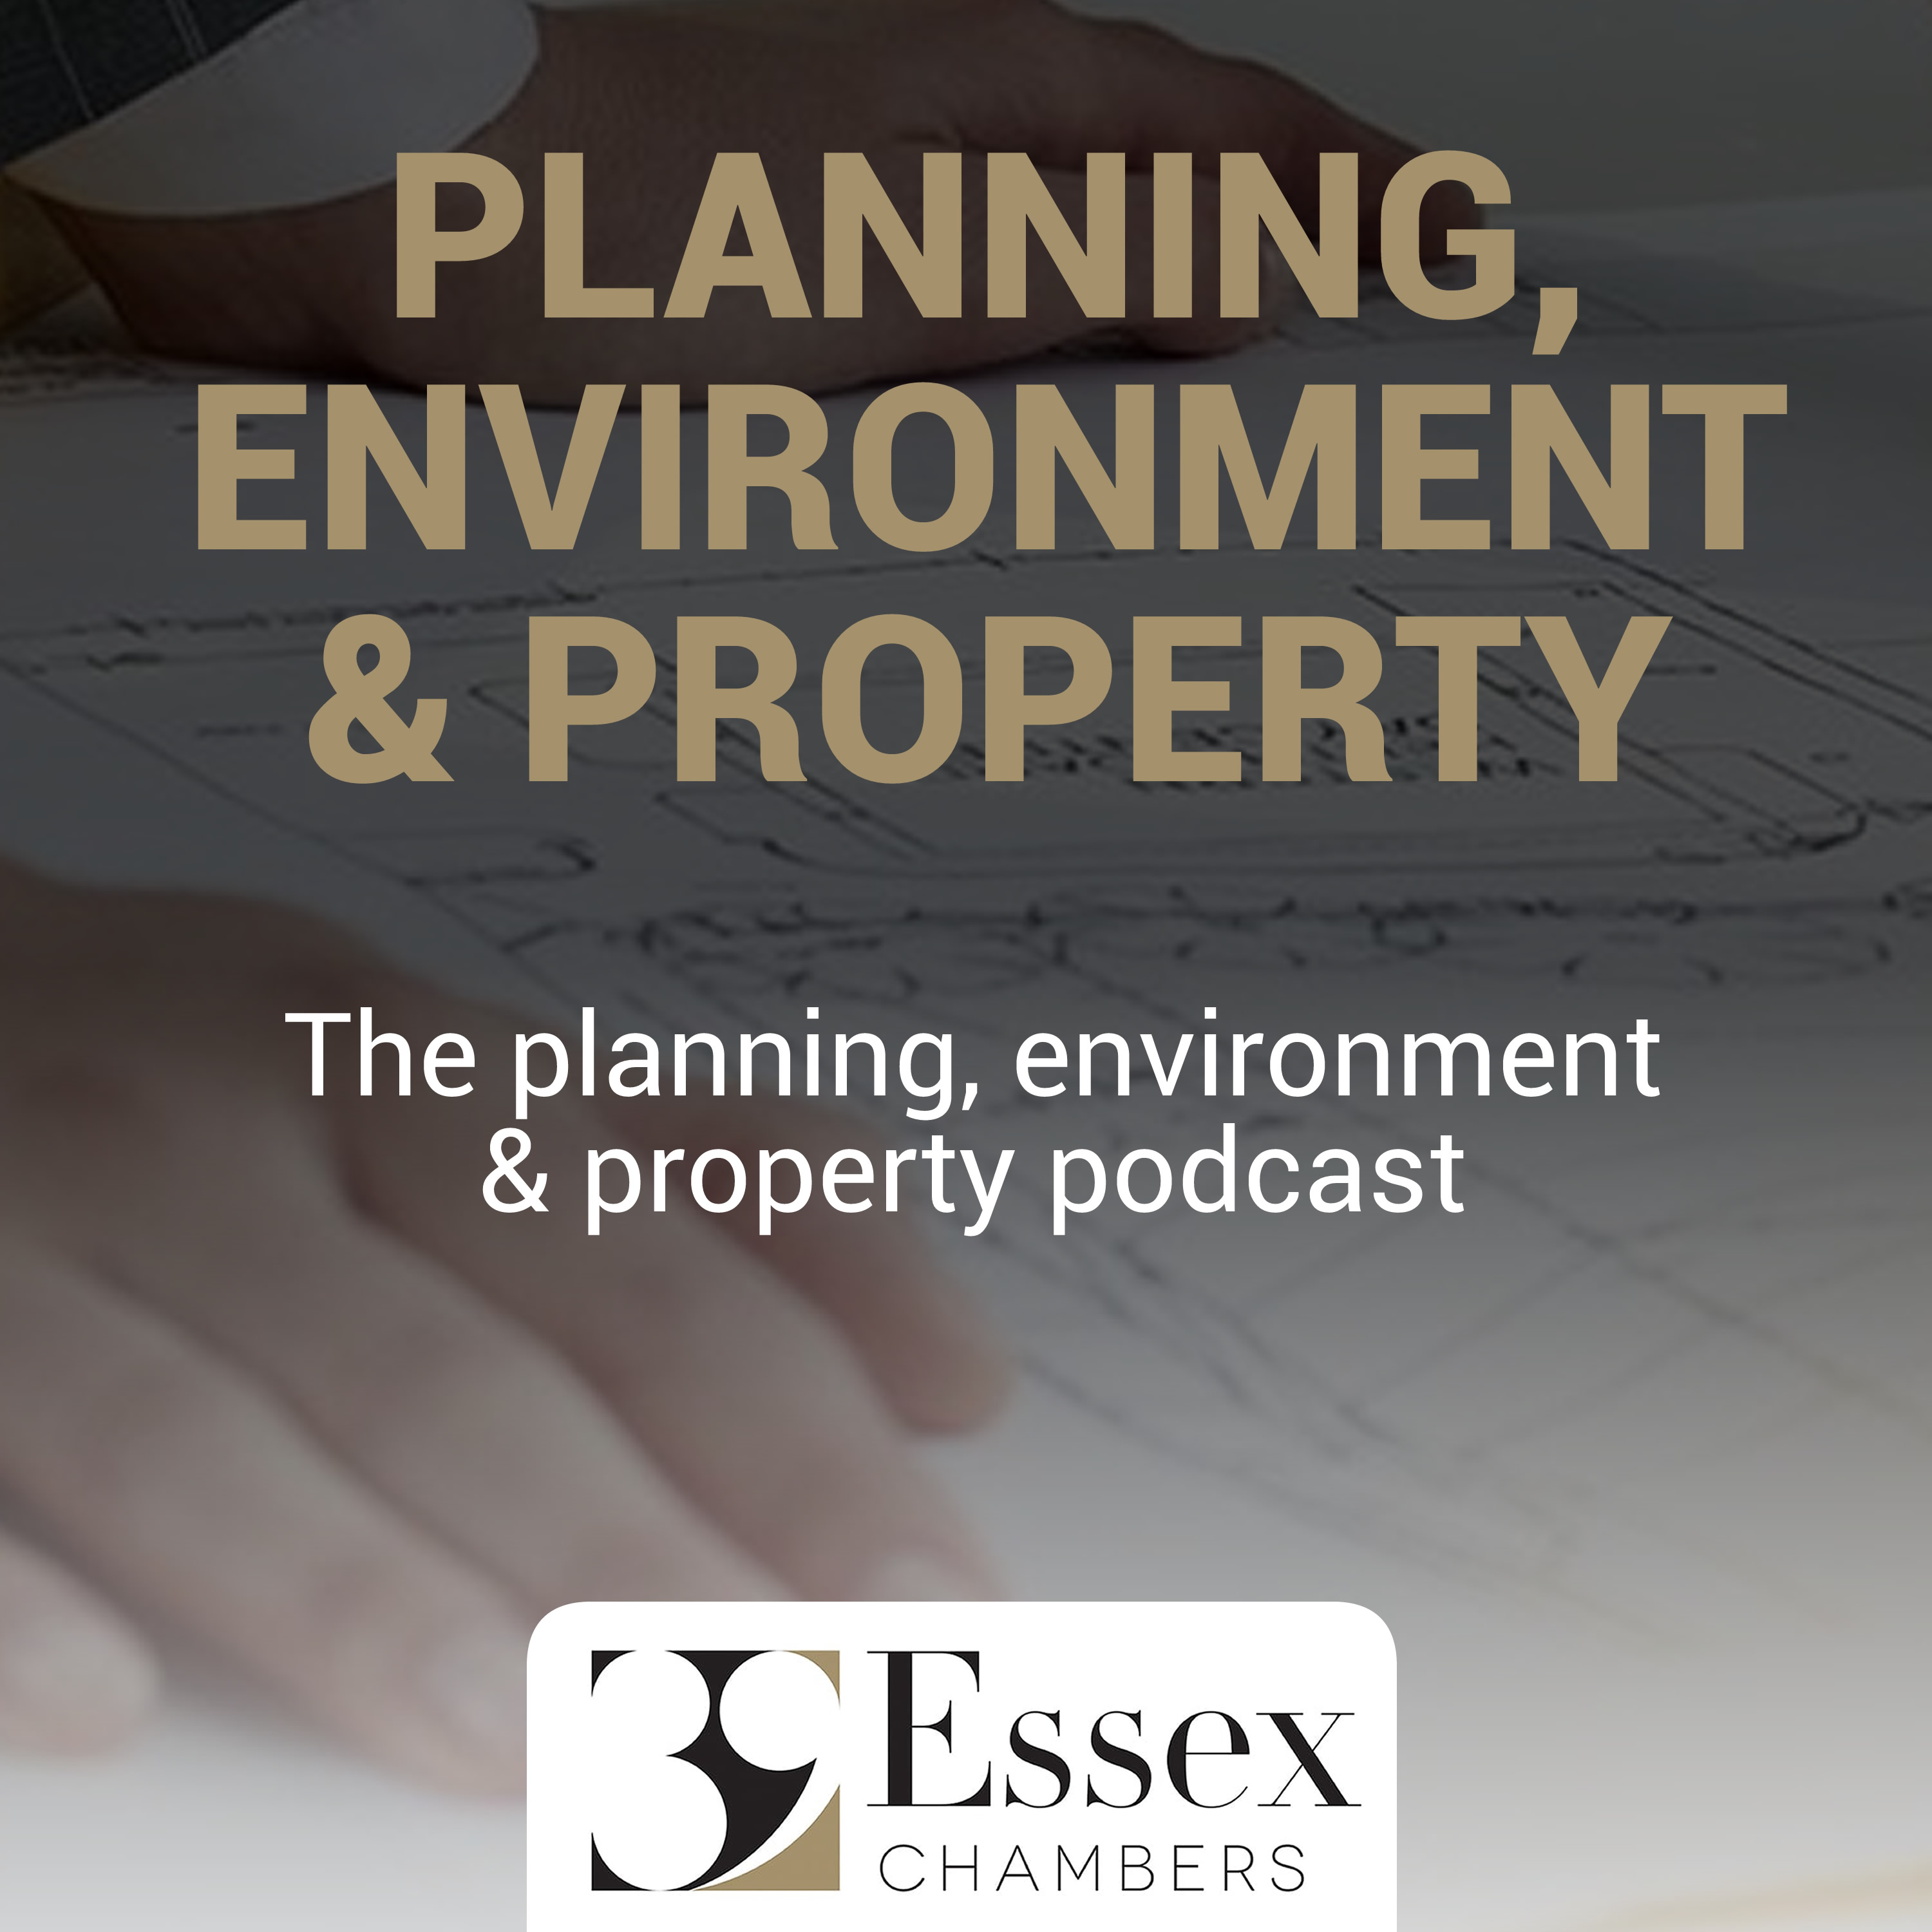 Artwork for podcast The Planning, Environment & Property Podcast